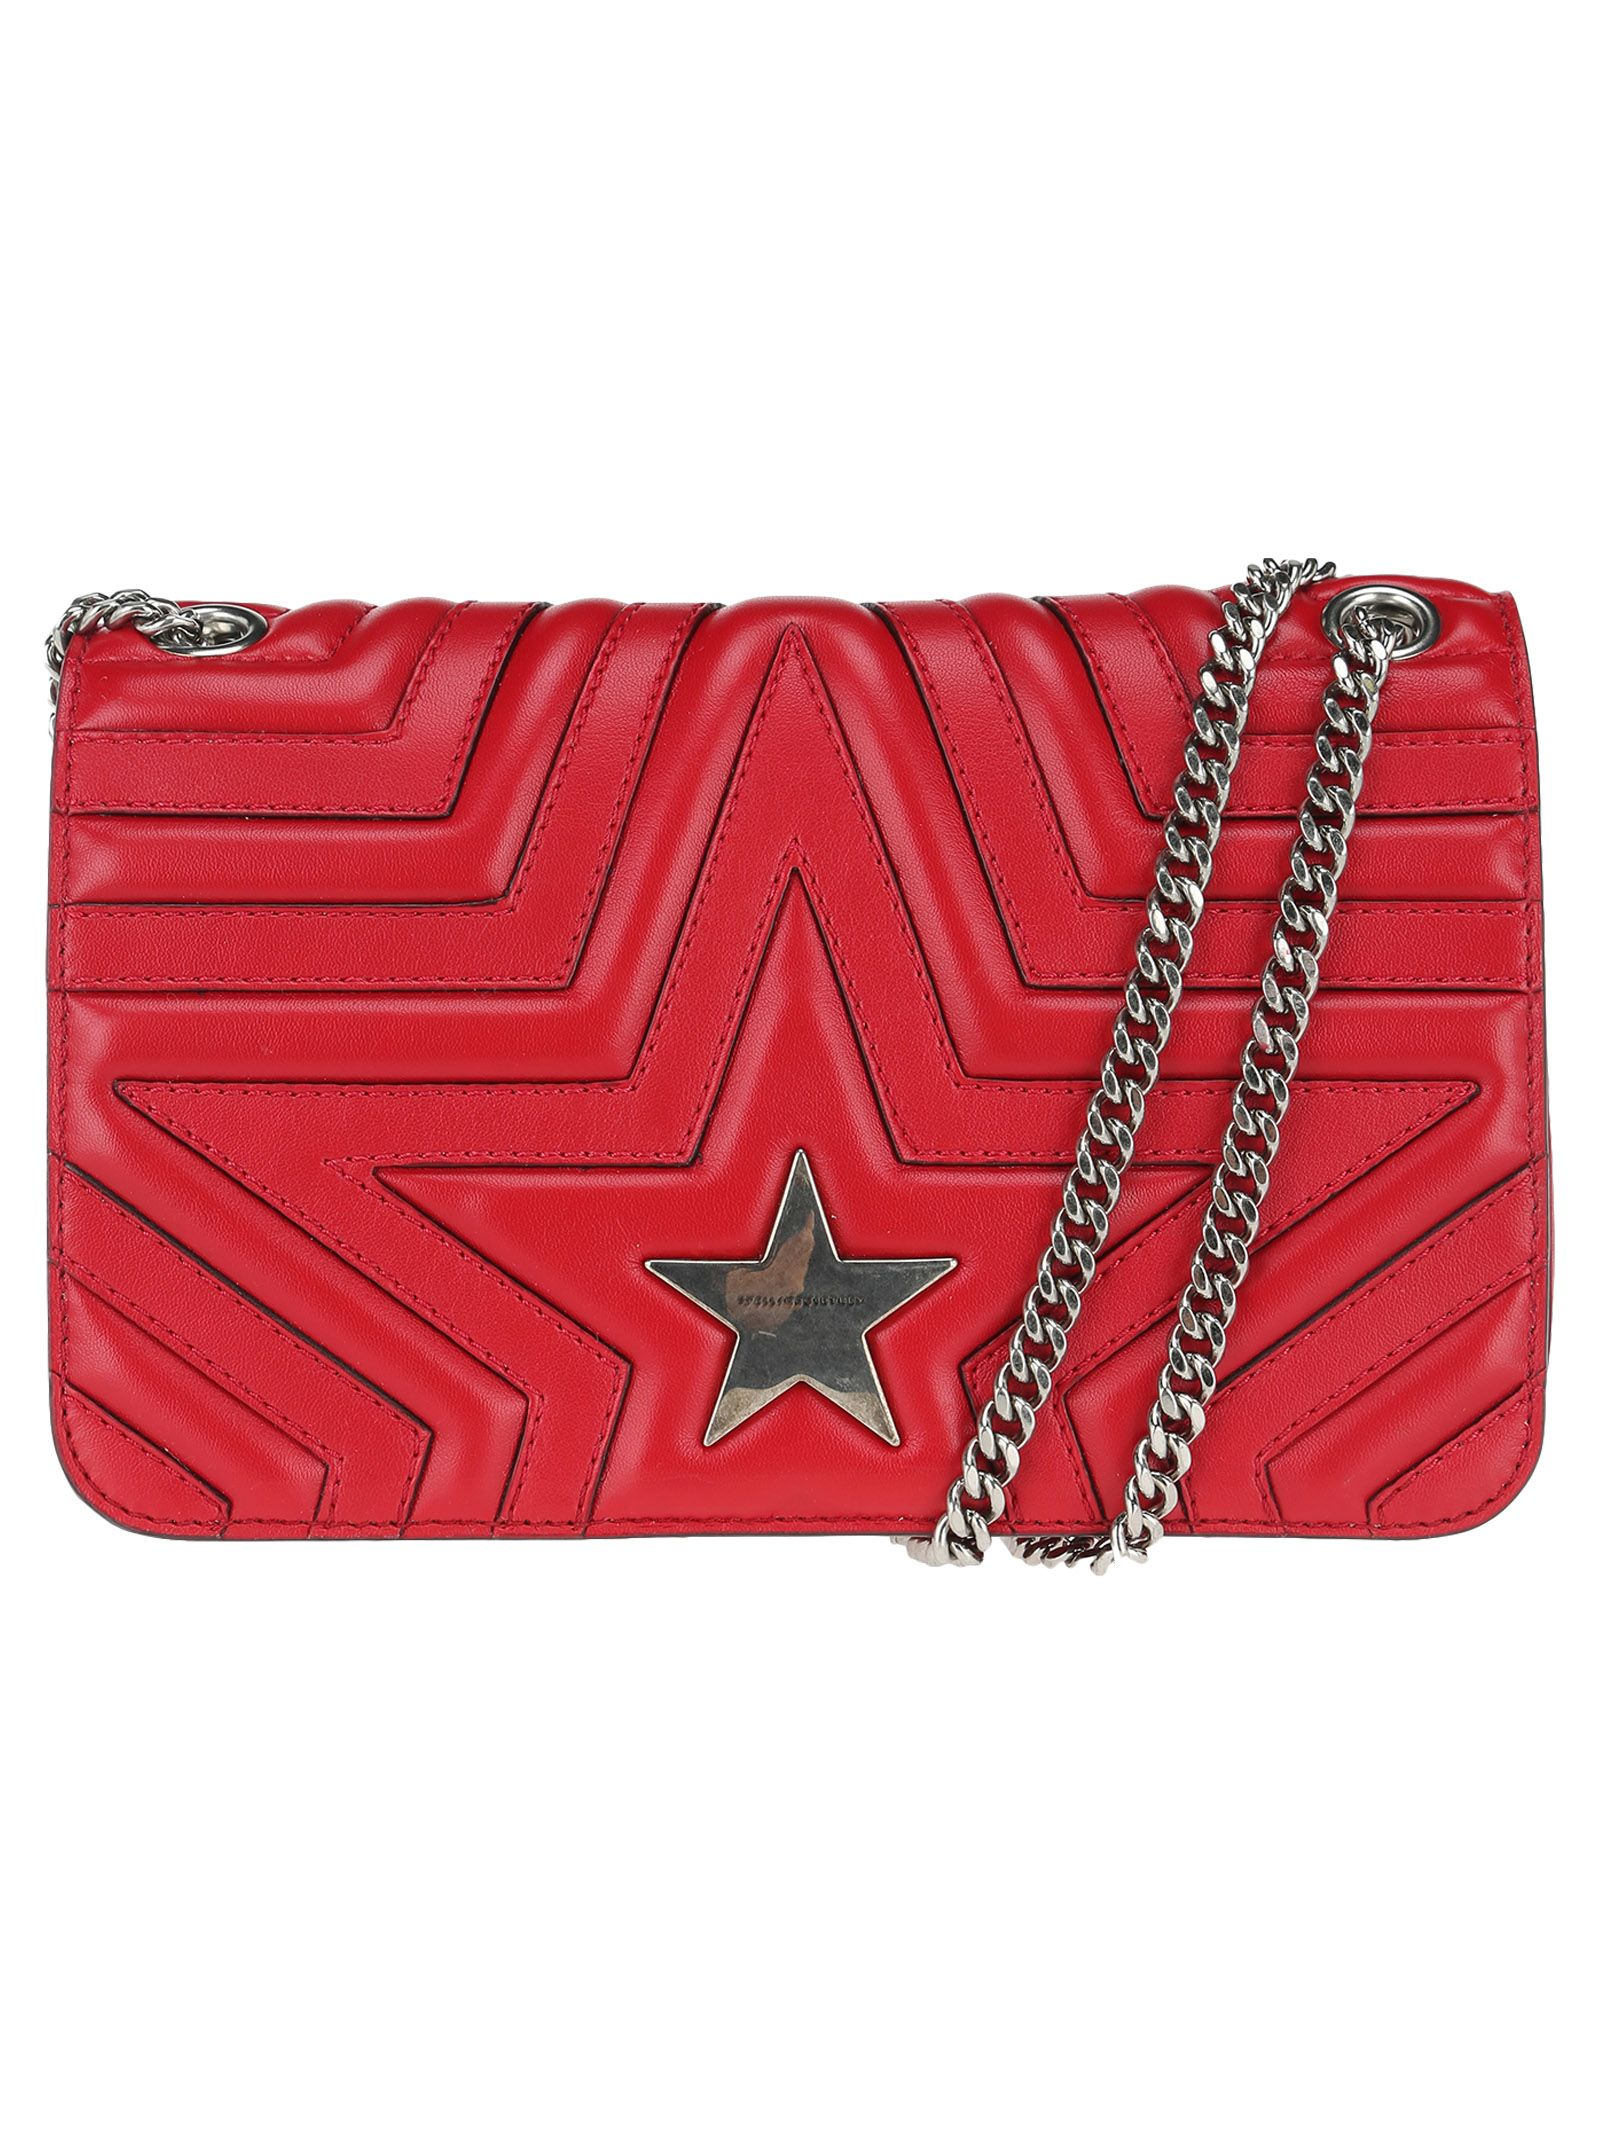 STELLA MCCARTNEY FLAP STELLA STAR